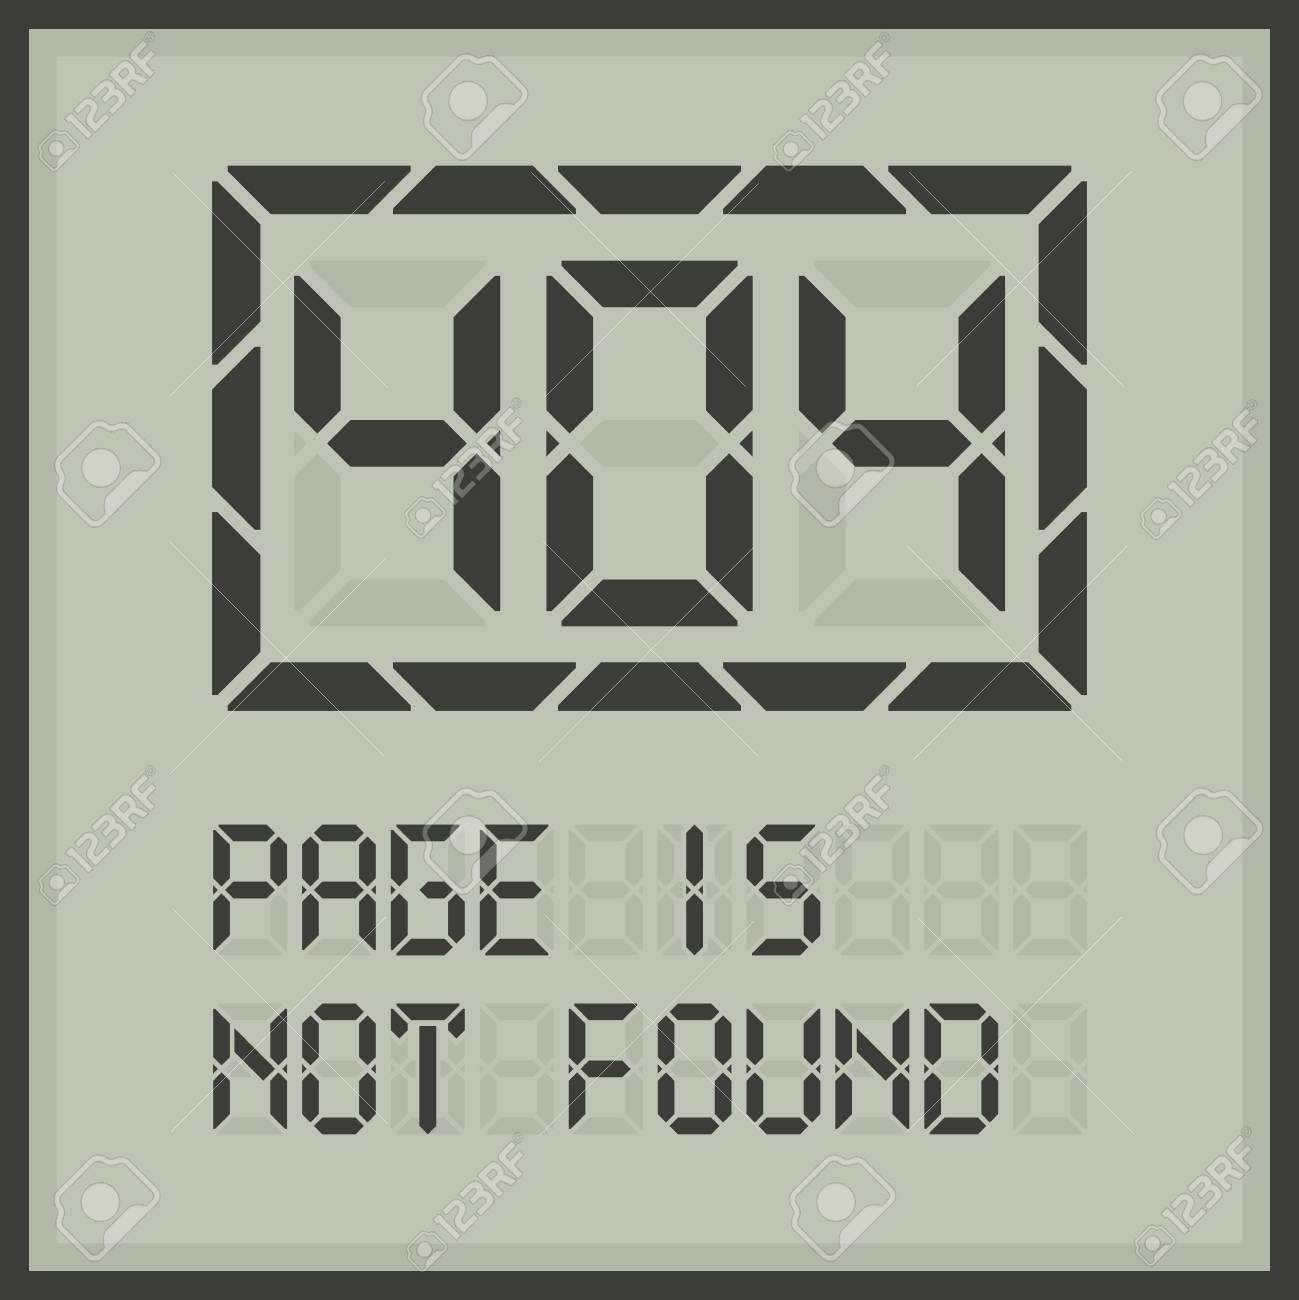 Page In Not Found. Error 404 Web Page Template. Royalty Free ...